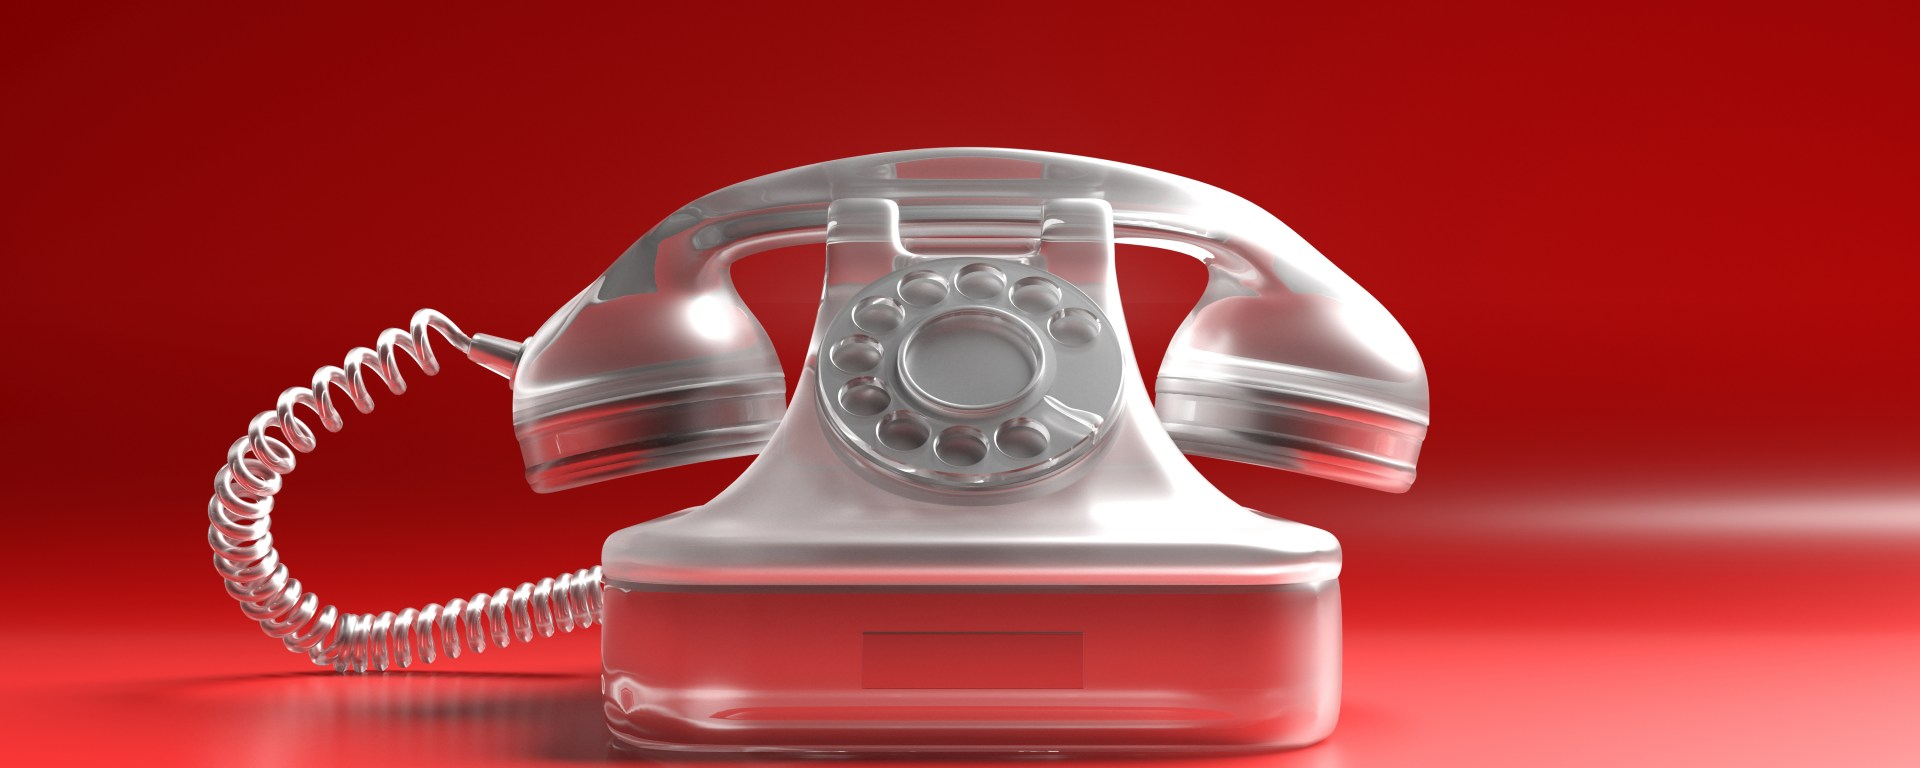 Telephone vintage on red background